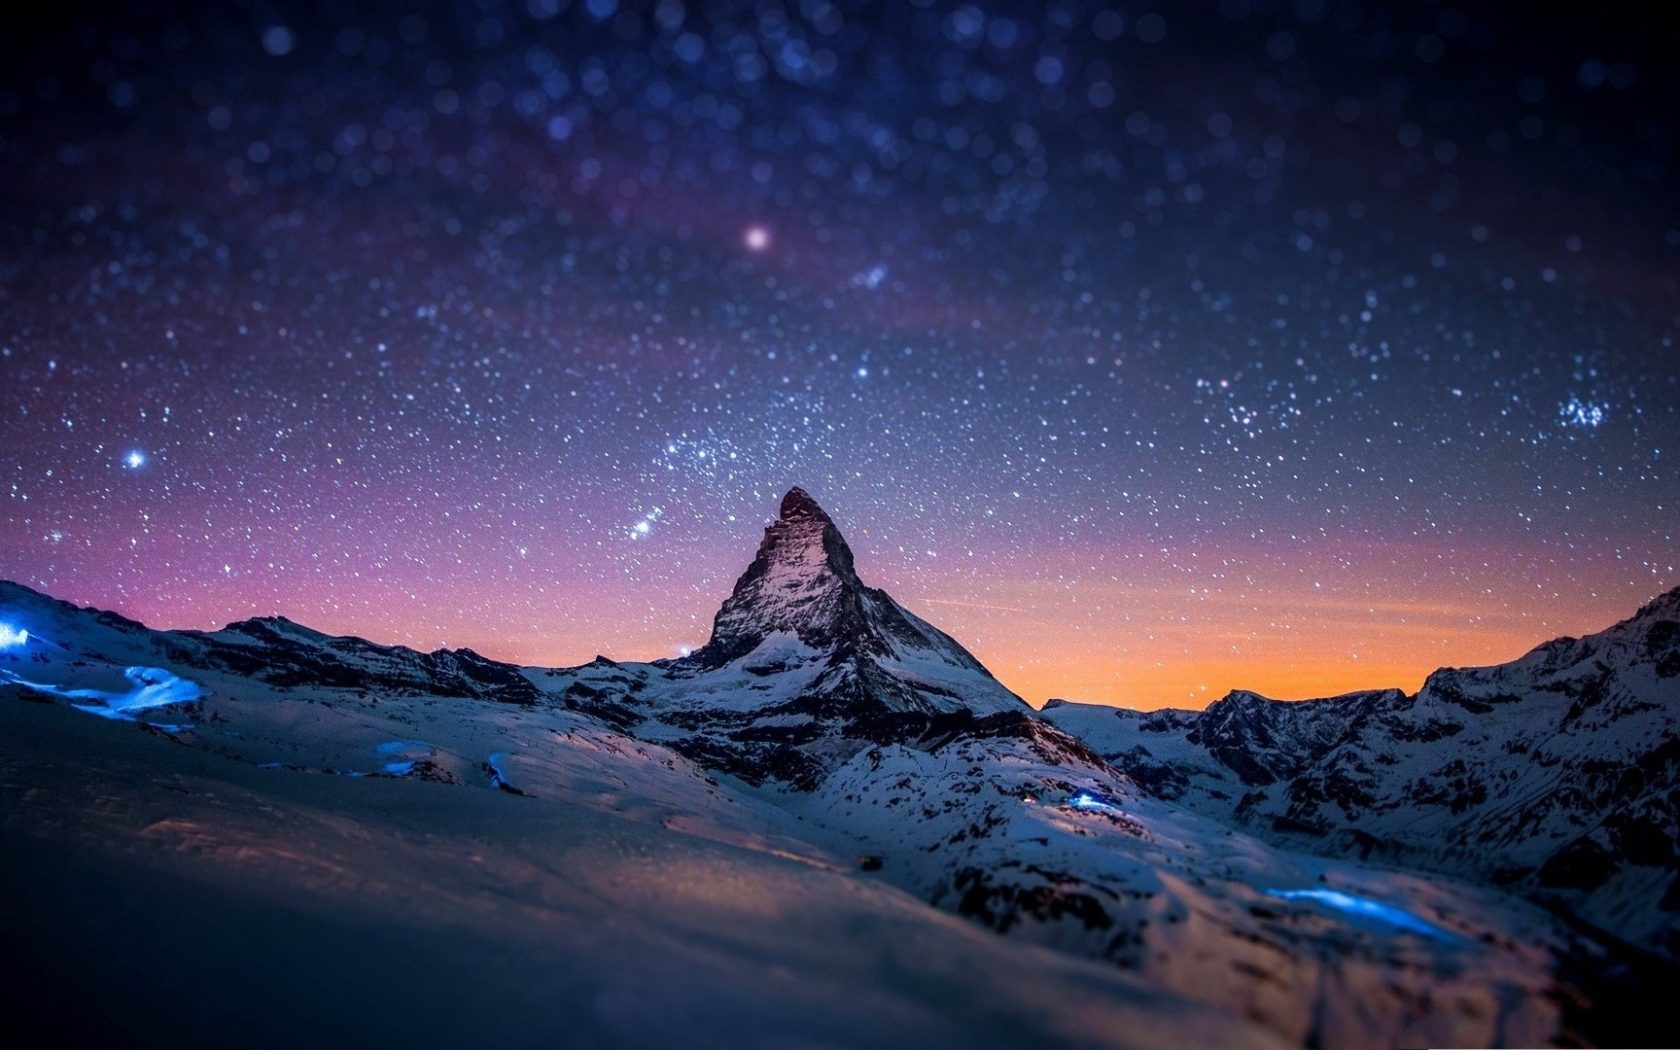 Fall Winter Iphone Wallpaper Snowy Winter Night Mountains With Snow Hd Wallpaper For